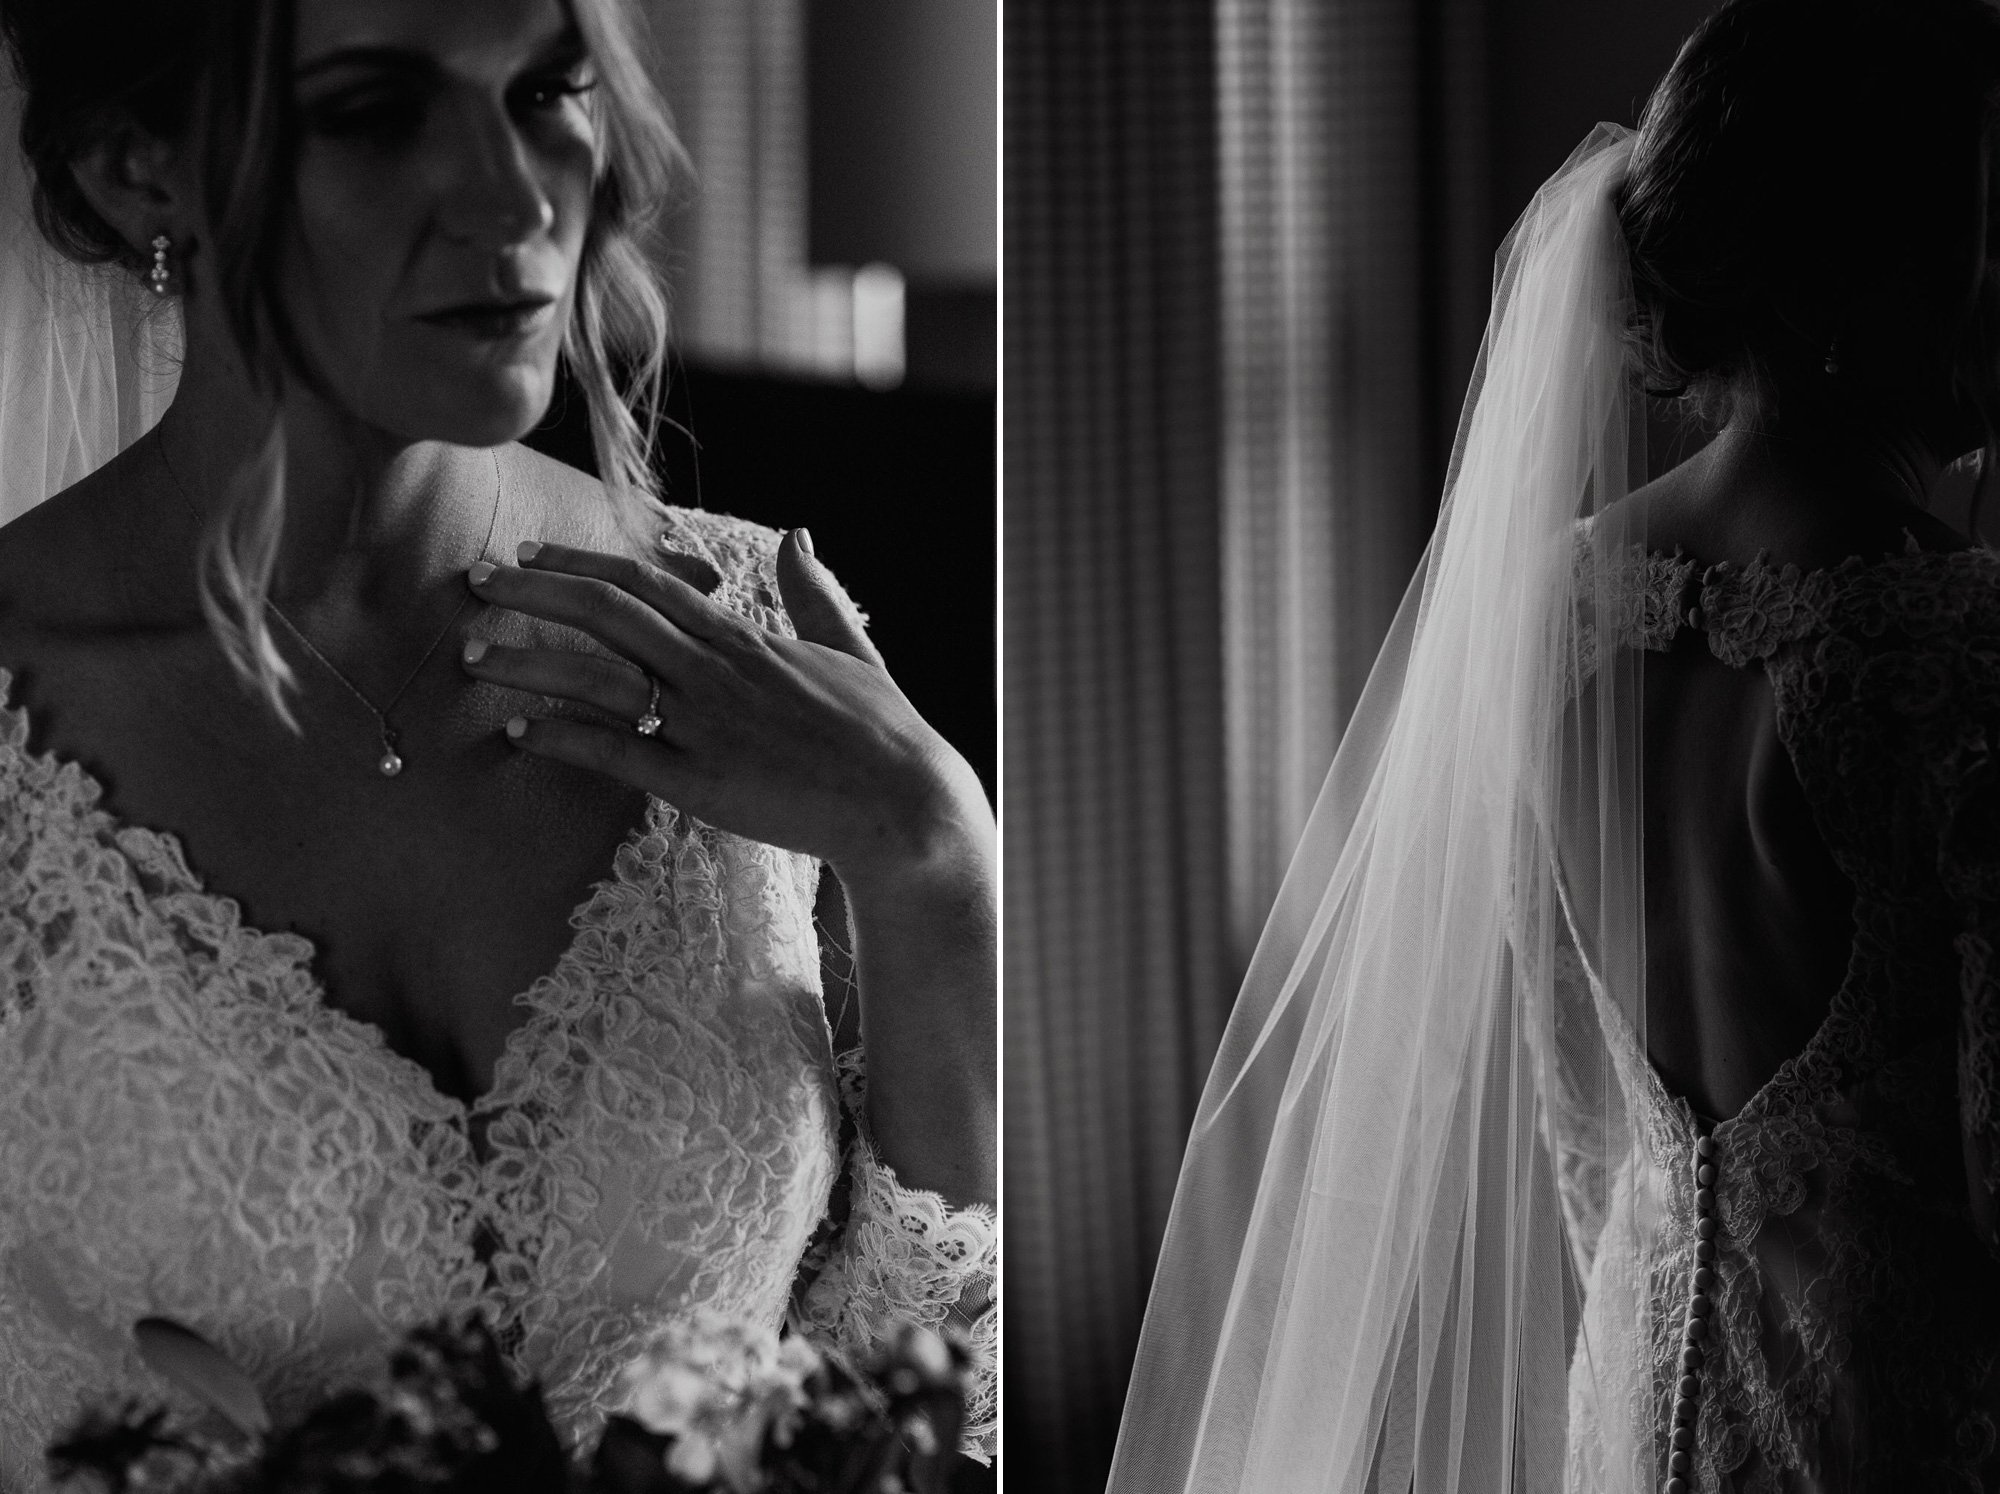 austin bride getting dressed in black and white, dark and moody austin wedding photography, black and white details of a bride getting dressed, black and white bridal getting ready photos